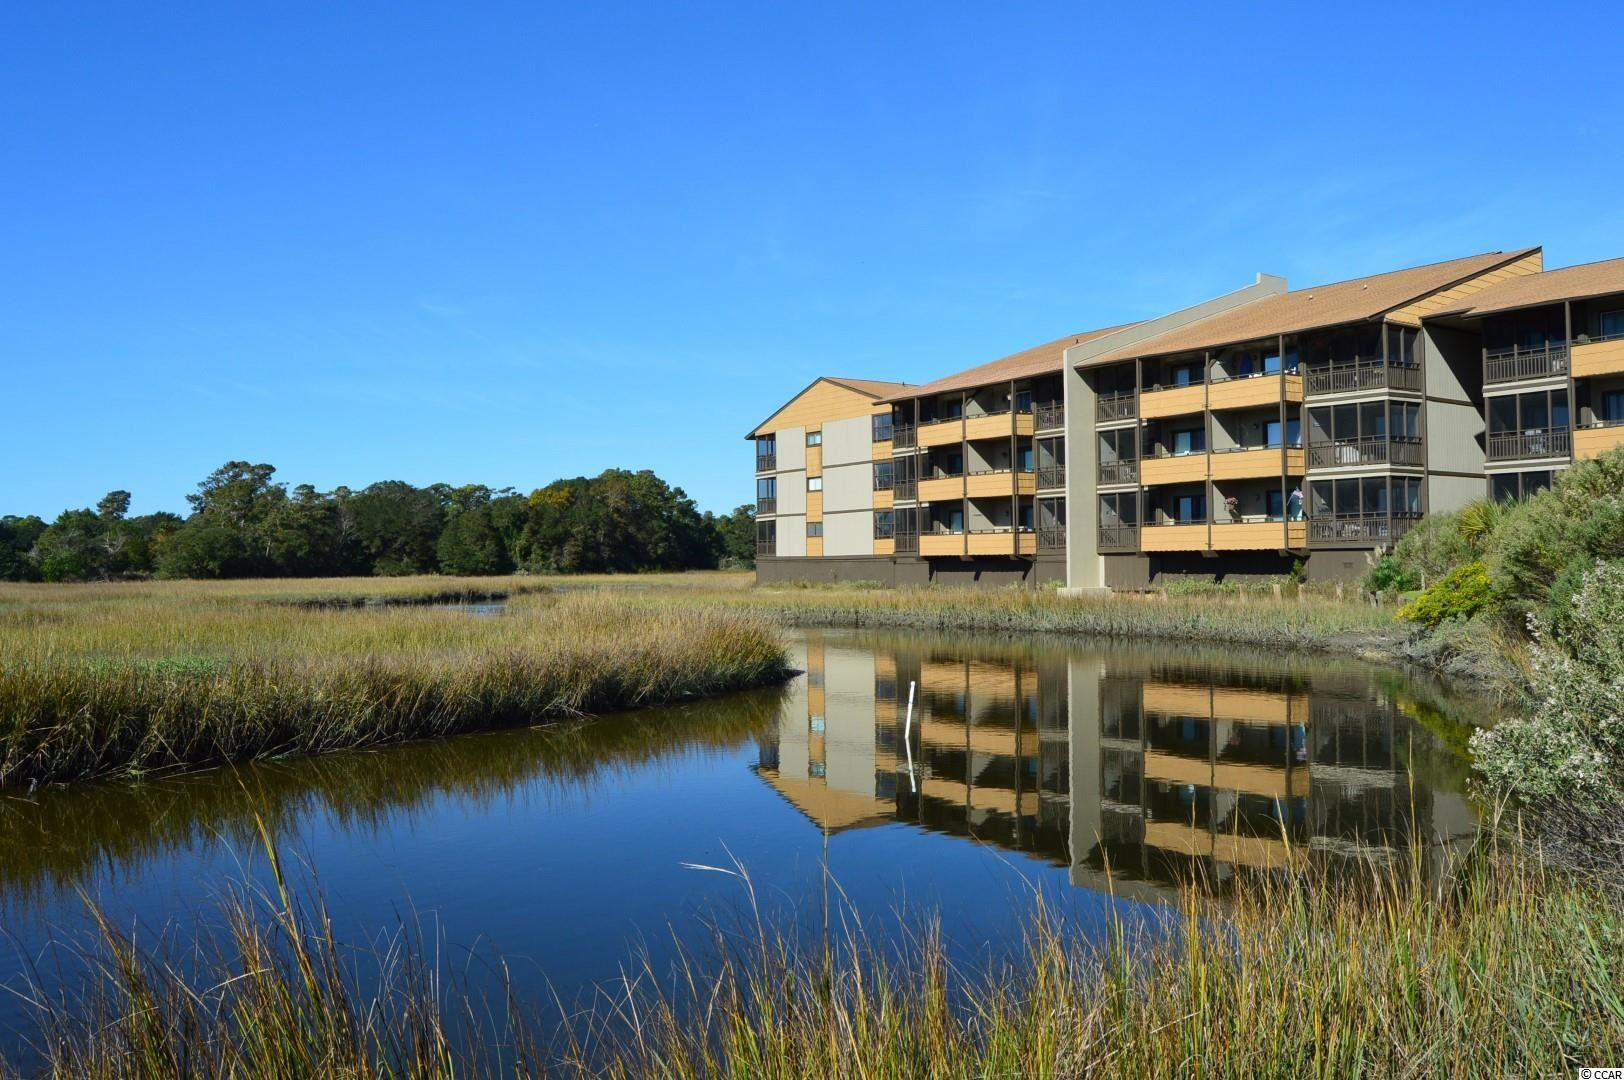 Mariners Cove Unit A-205 is a 2 bedroom and 1.5 bath condominium that is being sold fully furnished.  Coming in the front door you will pass through a foyer with wood floors that leads immediately into the kitchen.  The kitchen features an open breakfast bar that keeps you a part of the activities in the living and dining room.  The Master Bedroom has its own private balcony and with the screened in porch located off the Living room, they provide wonderful places to relax and enjoy the beautiful weather, the view of Singleton Marsh, and even a glimpse of the ocean.  This unit comes with its own detached storage room, perfect for storing beach chairs and umbrellas.  This beach home is one that you and your guests will long enjoy.  Mariners Cove for years has been one of the most popular resort destinations in the Myrtle Beach area.  Being located in the Myrtle Beach Arcadian section, owners and guests have long enjoyed the central location to great shopping like Barefoot Landing, Tanger Outlets, Myrtle Beach Mall, and Broadway at the Beach.  In addition, the location is at the center of family entertainment like the Carolina Opry, Alabama Theatre and much more.  You can drive in any direction and locate restaurants, golf courses, putt-putt and even the new Sky Wheel in just minutes.  For most, the main reason for coming to Mariners Cove is the fact that it is located right across the street from the Atlantic Ocean and some of the most pristine beaches in the south.  Please make your appointment to see this resort home.  All measurements are approximate and not guaranteed.  Verification of measurements are the responsibility of the buyer.